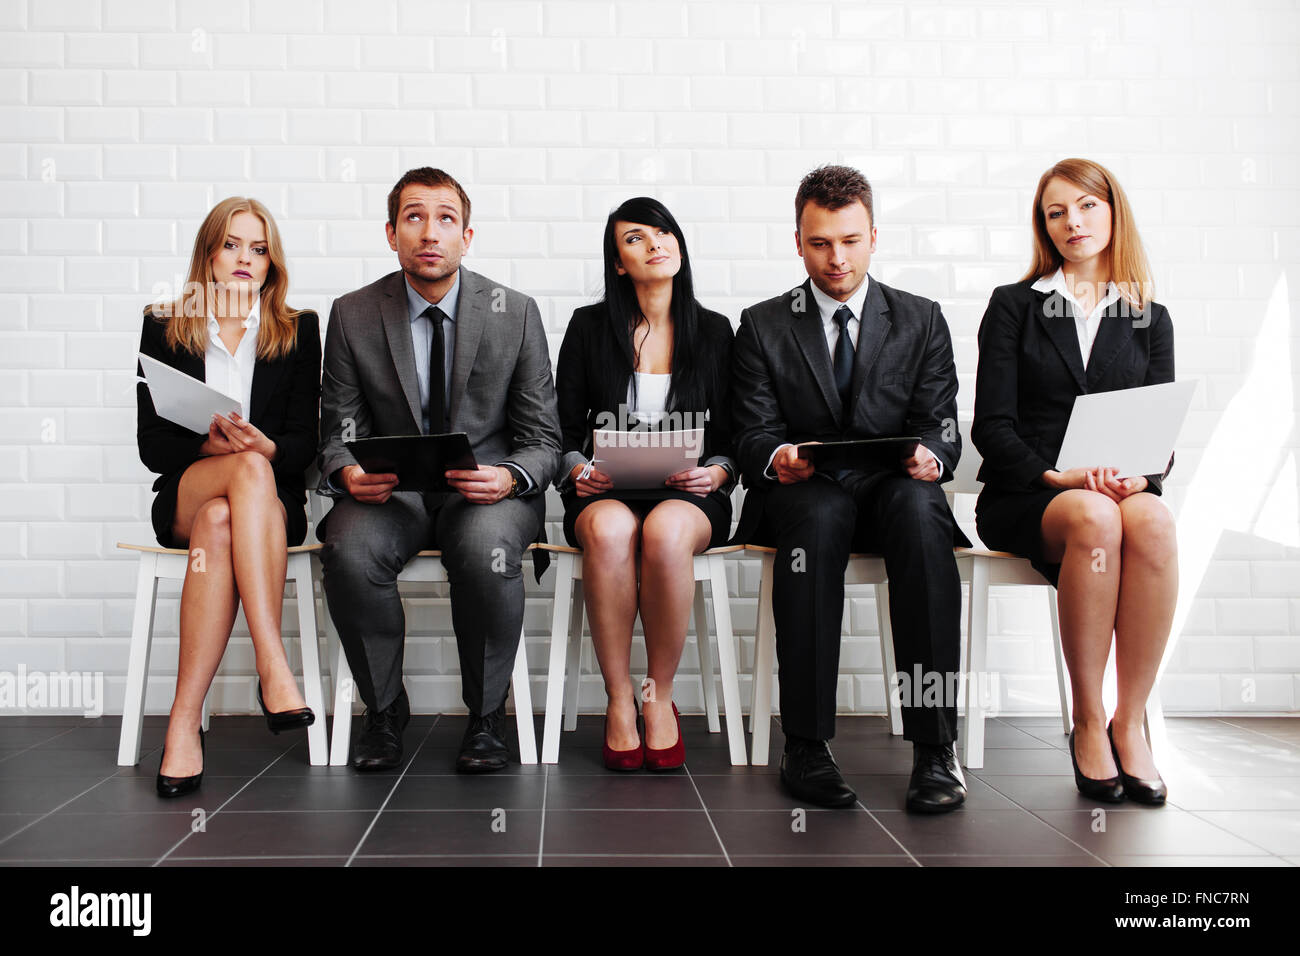 Human resources. Stressed business people before interview Stock Photo